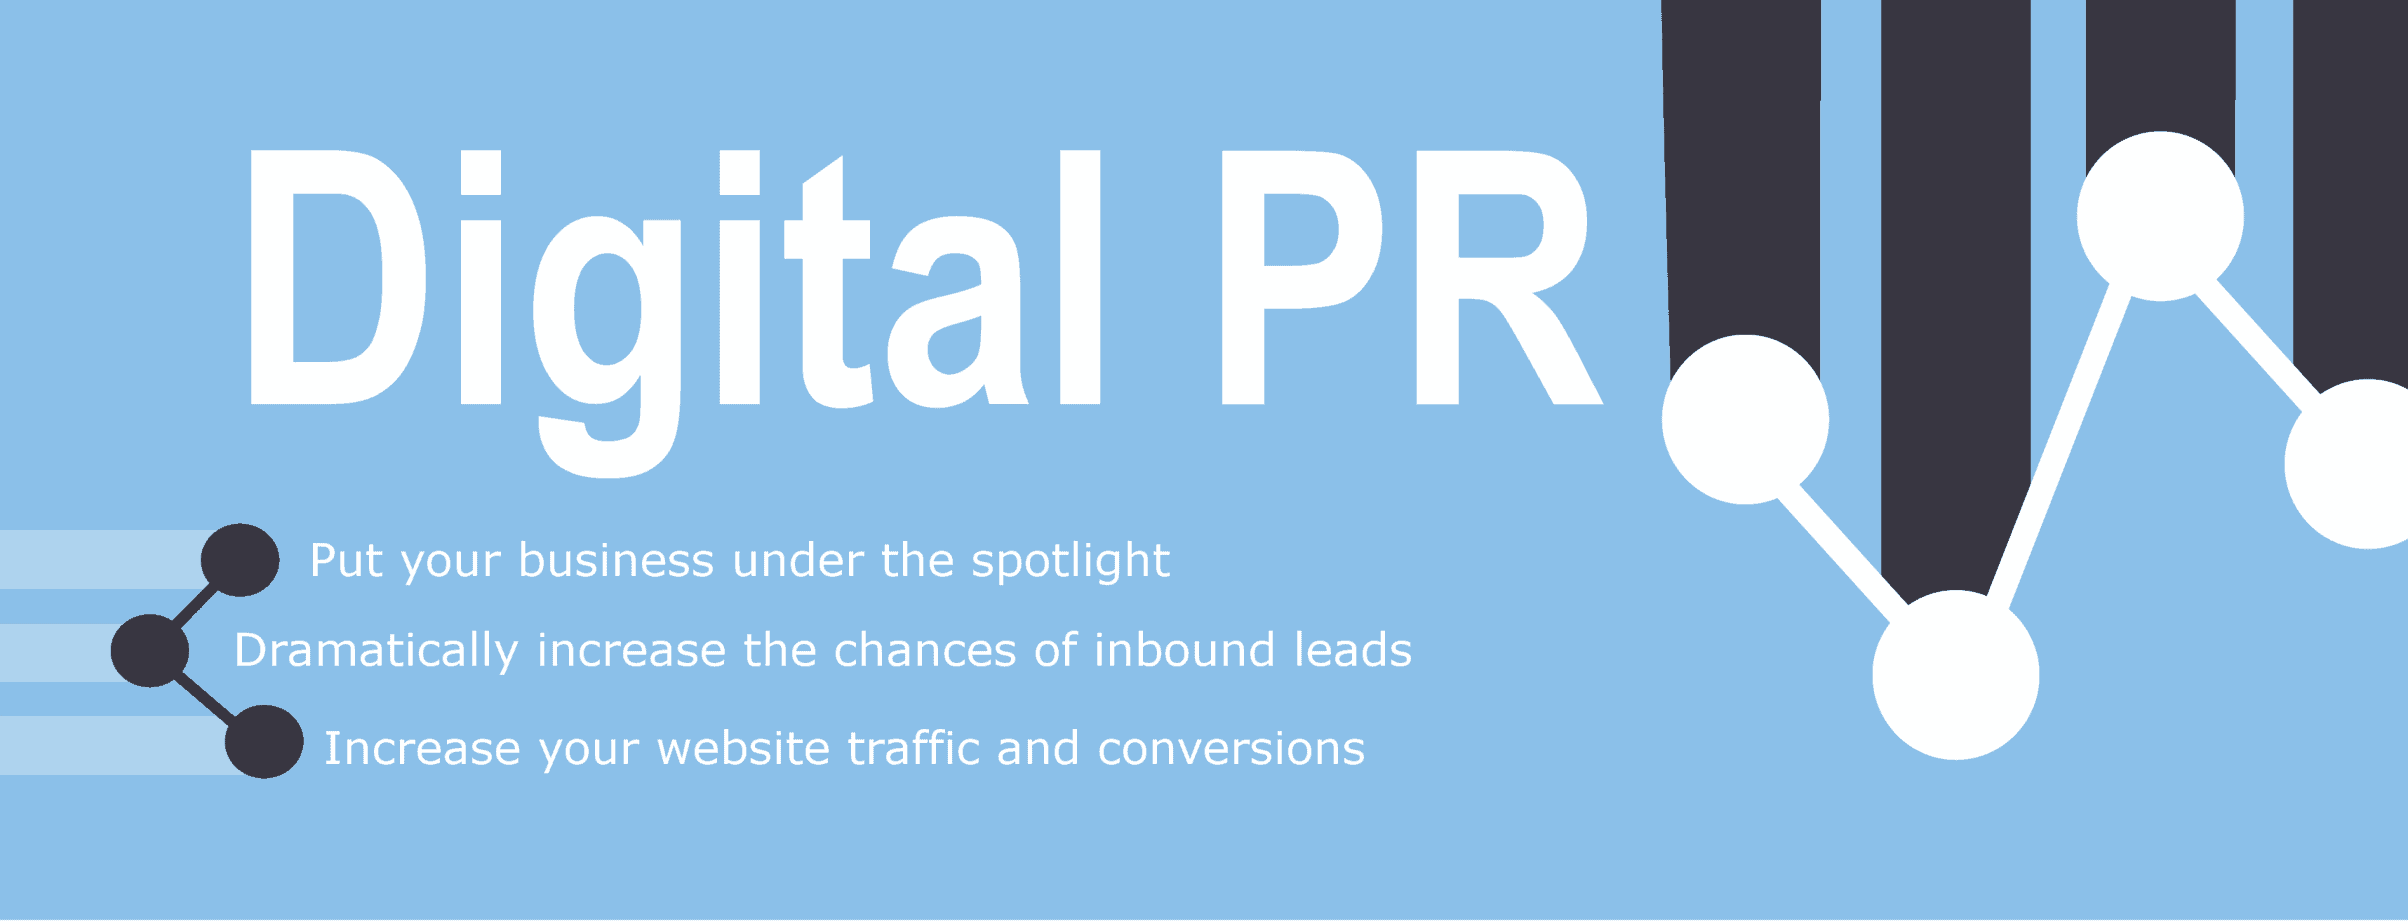 Digital PR Agency Banner